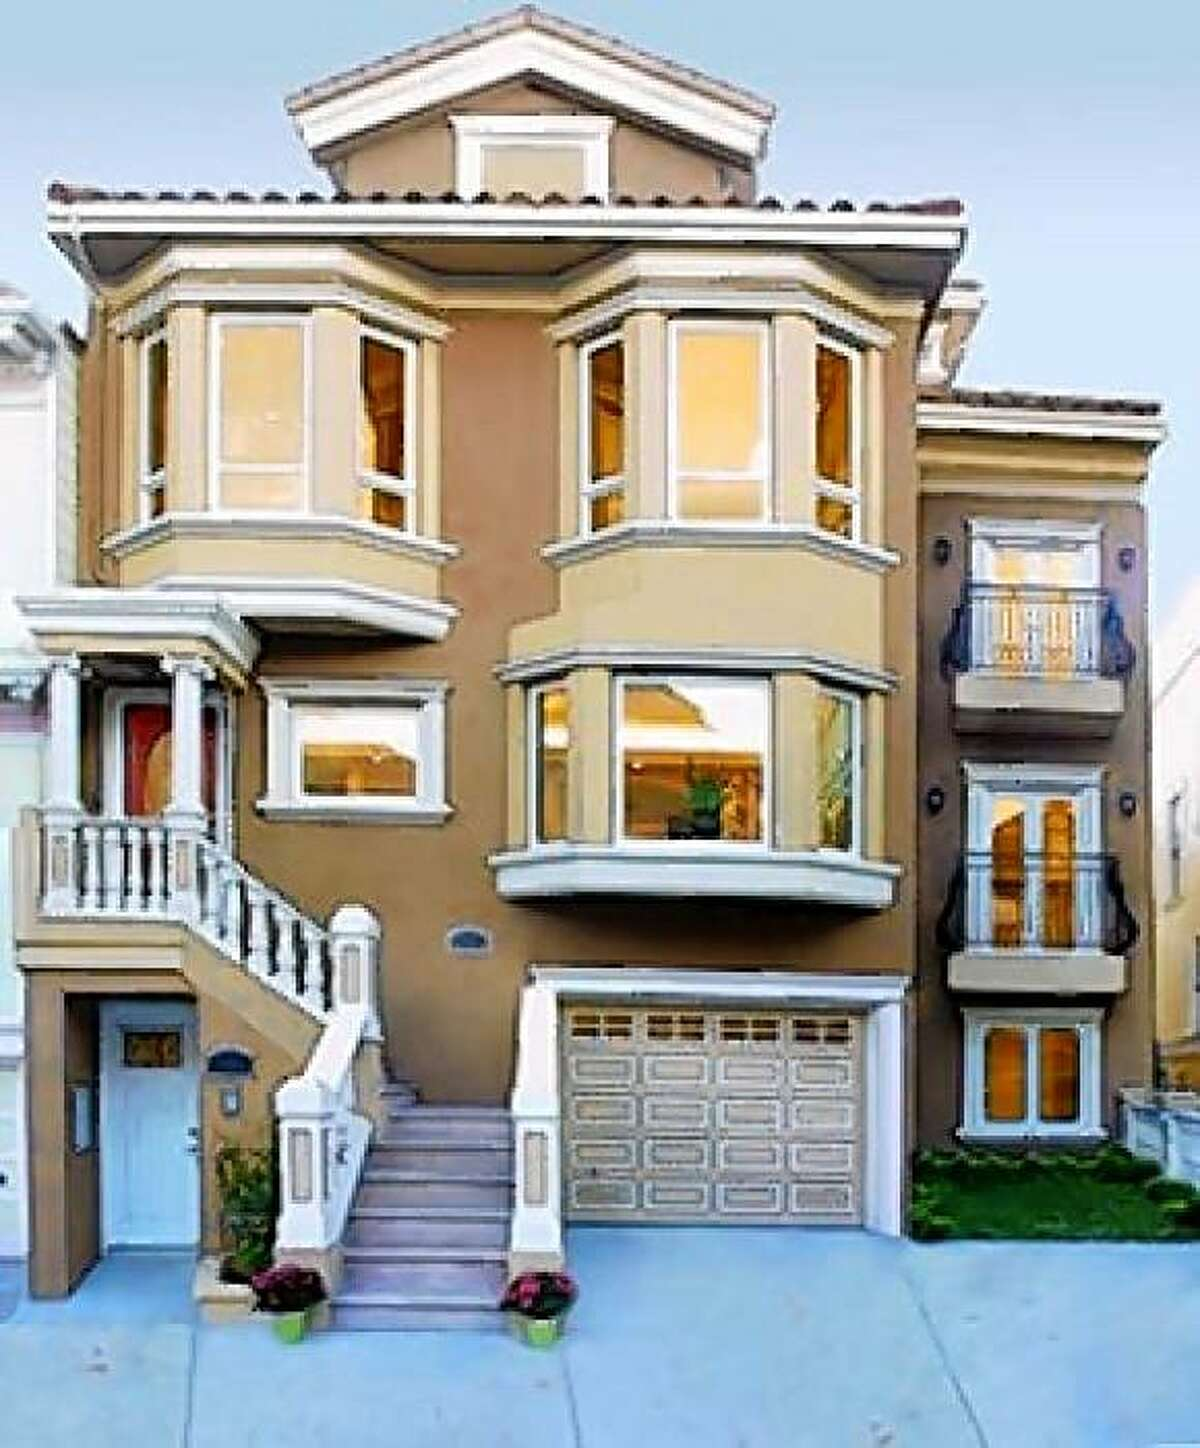 San Francisco Edwardian: This 4,200-quare foot home in the Inner Sunset was the grand prize in a raffle sponsored by the Yerba Buena Center for the Arts. The winner chose $1.8 million instead and the home is back on the market for $2.1 million.